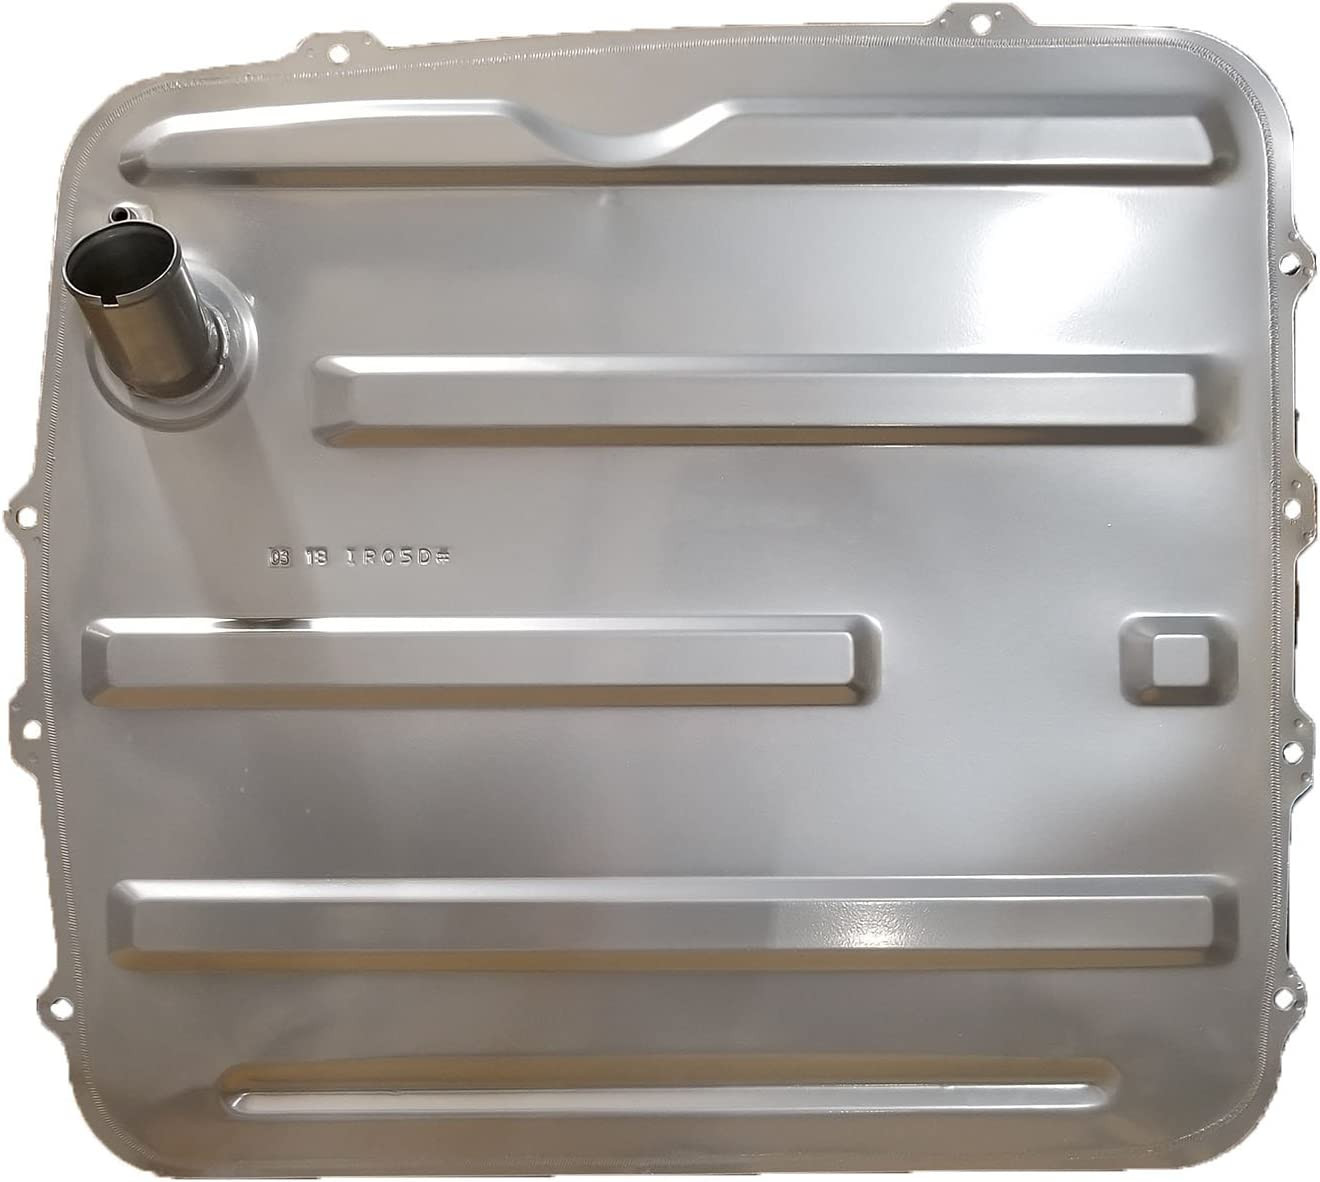 Liland IRO5D Fuel Tank Special price for 25% OFF a limited time